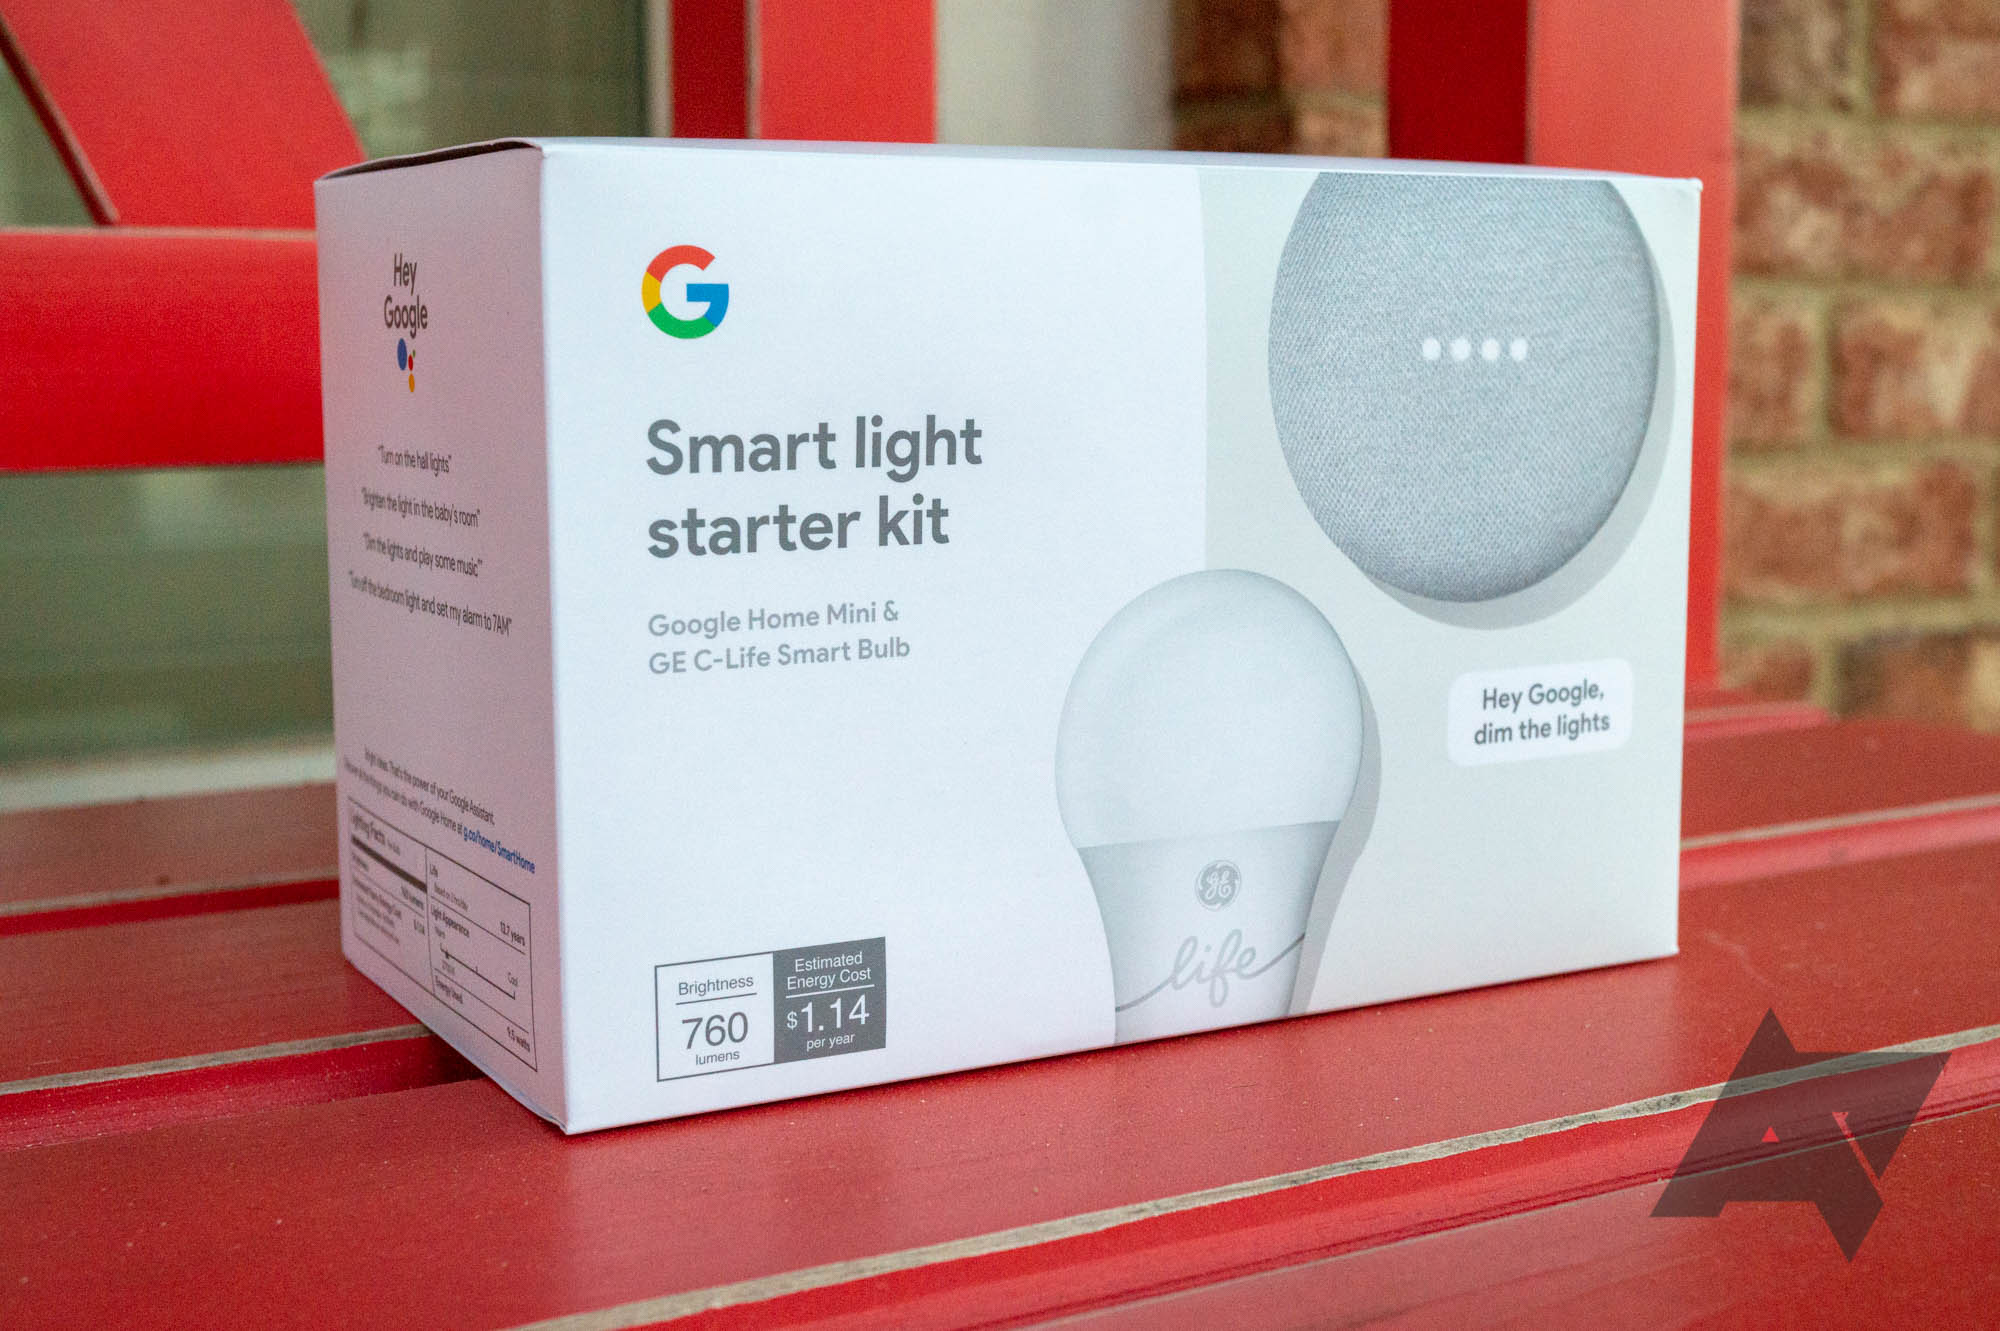 Review The Ge C Life Is An Affordable Smart Light Bulb Perfect For